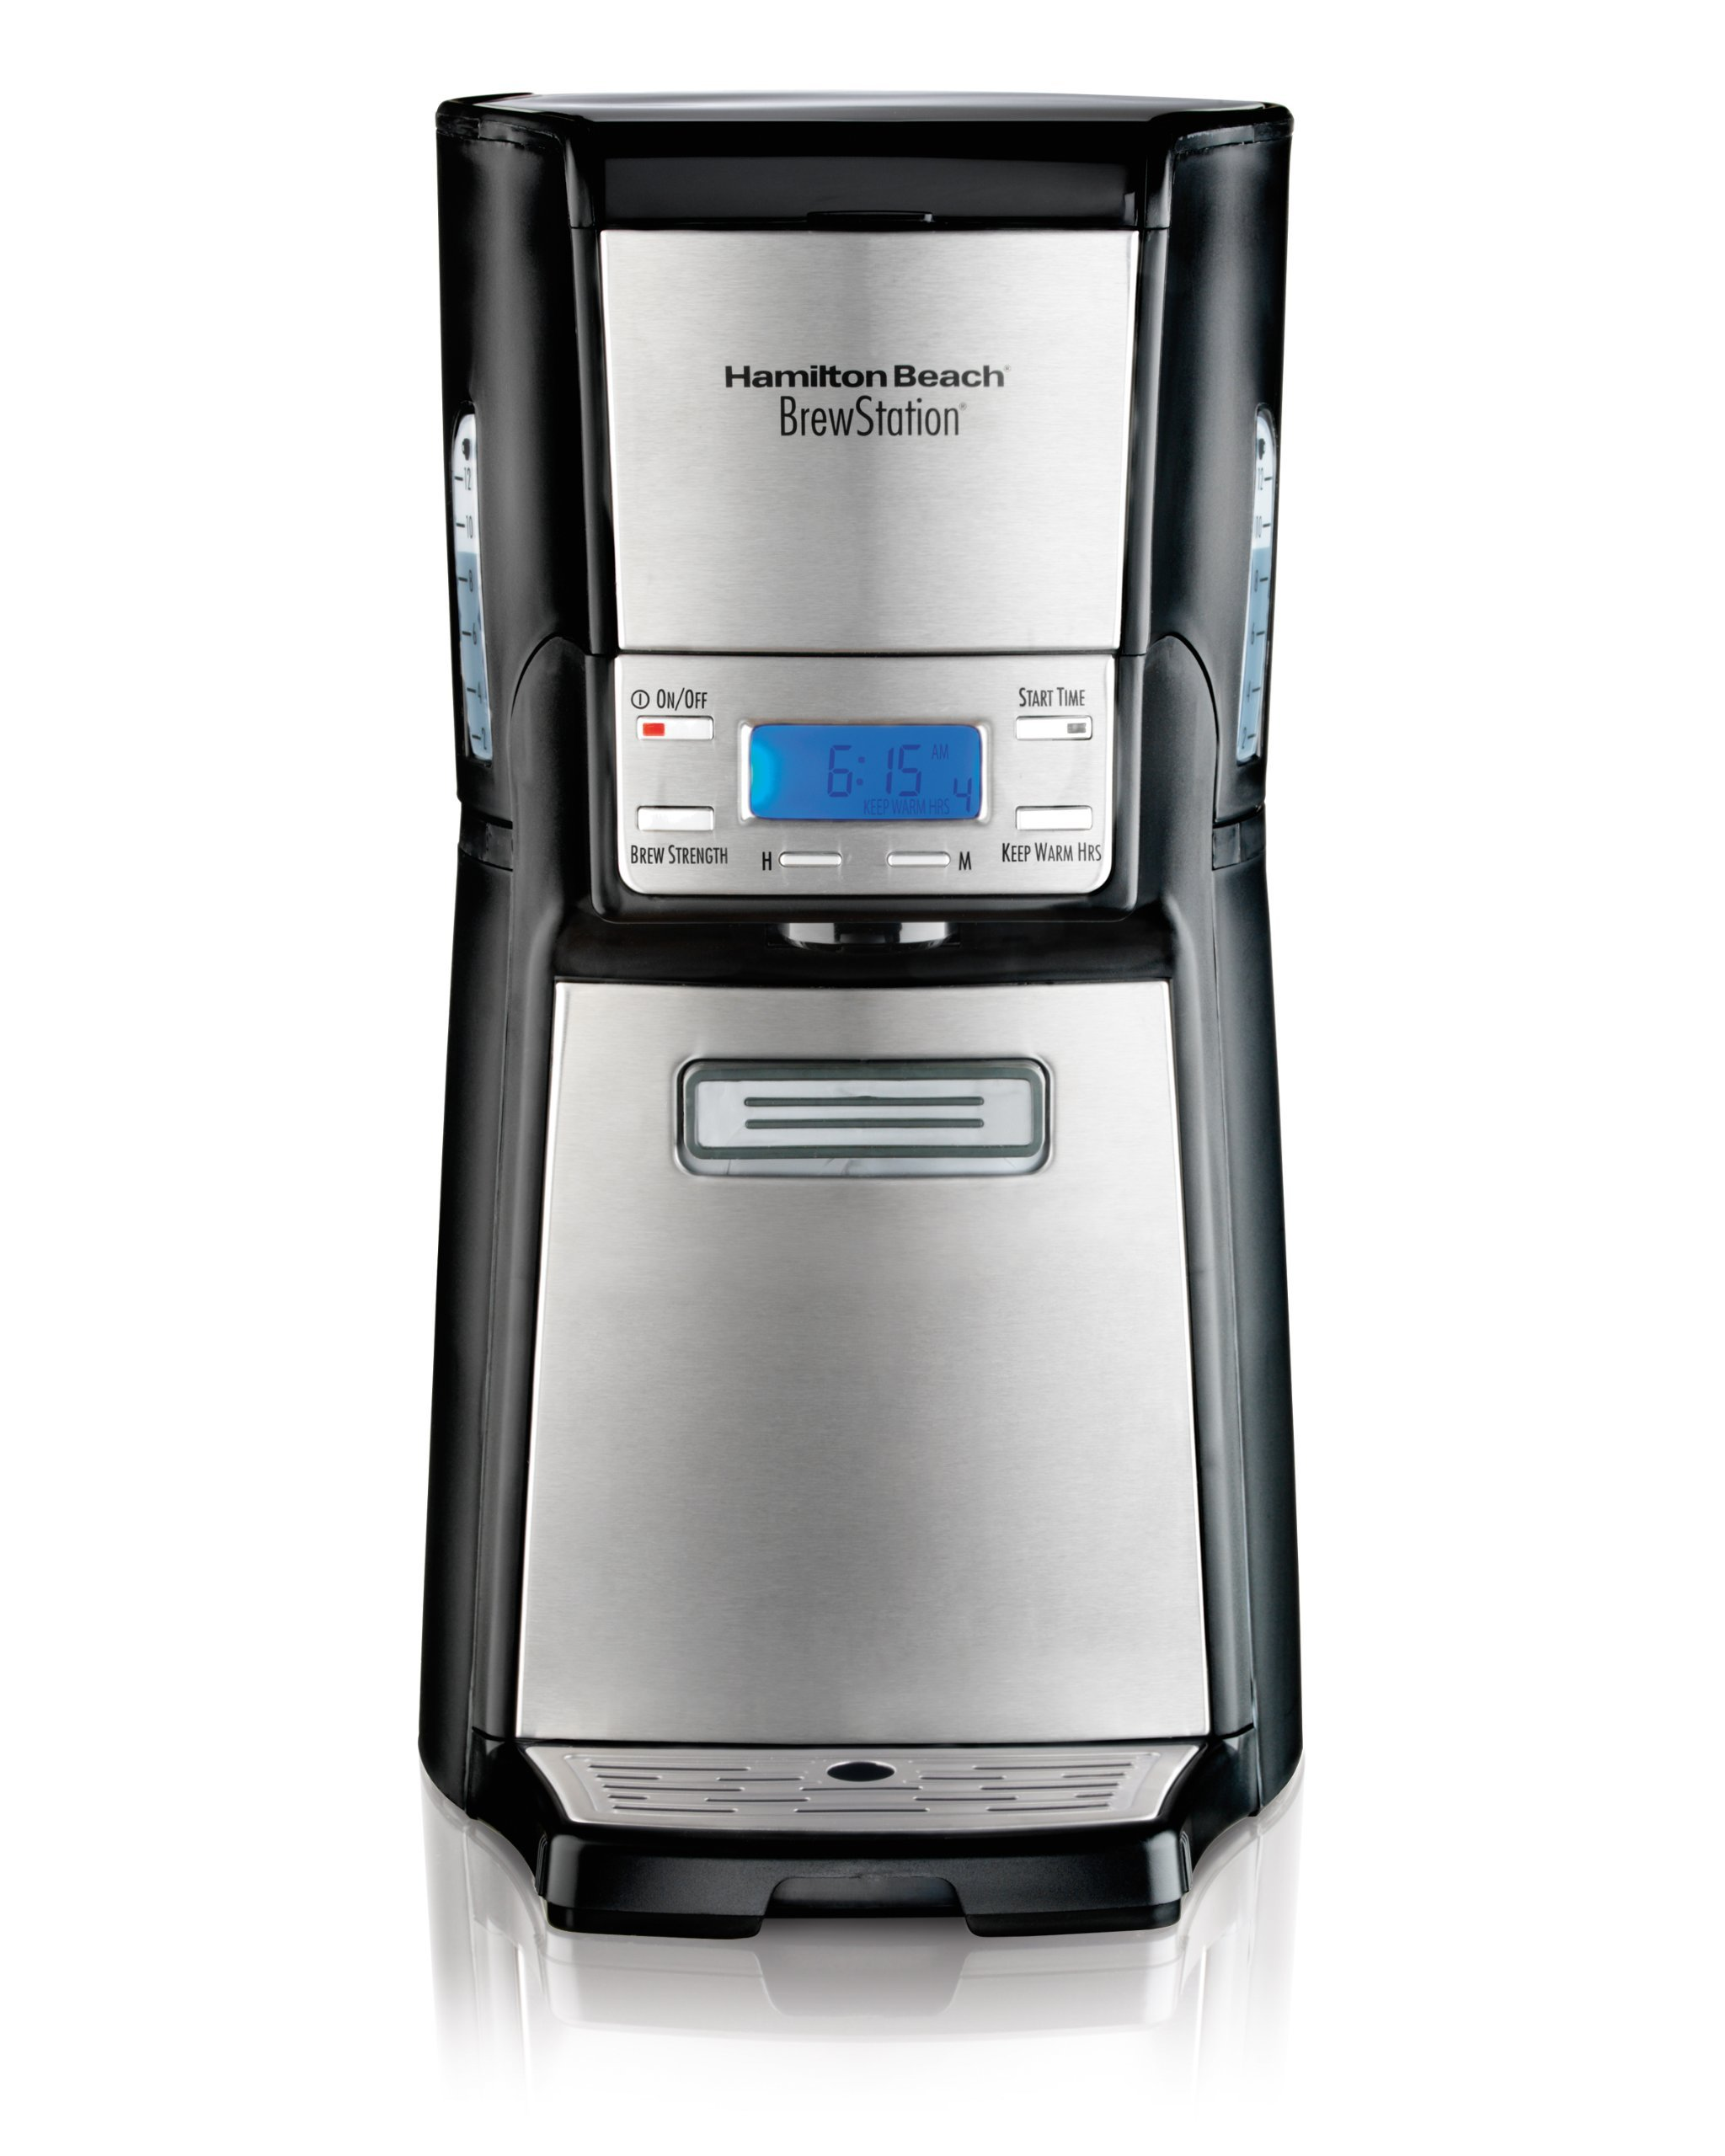 Hamilton Beach (48465) Coffee Maker with 12 Cup Capacity & Internal Storage Coffee Pot, Brewstation, Black & Stainless